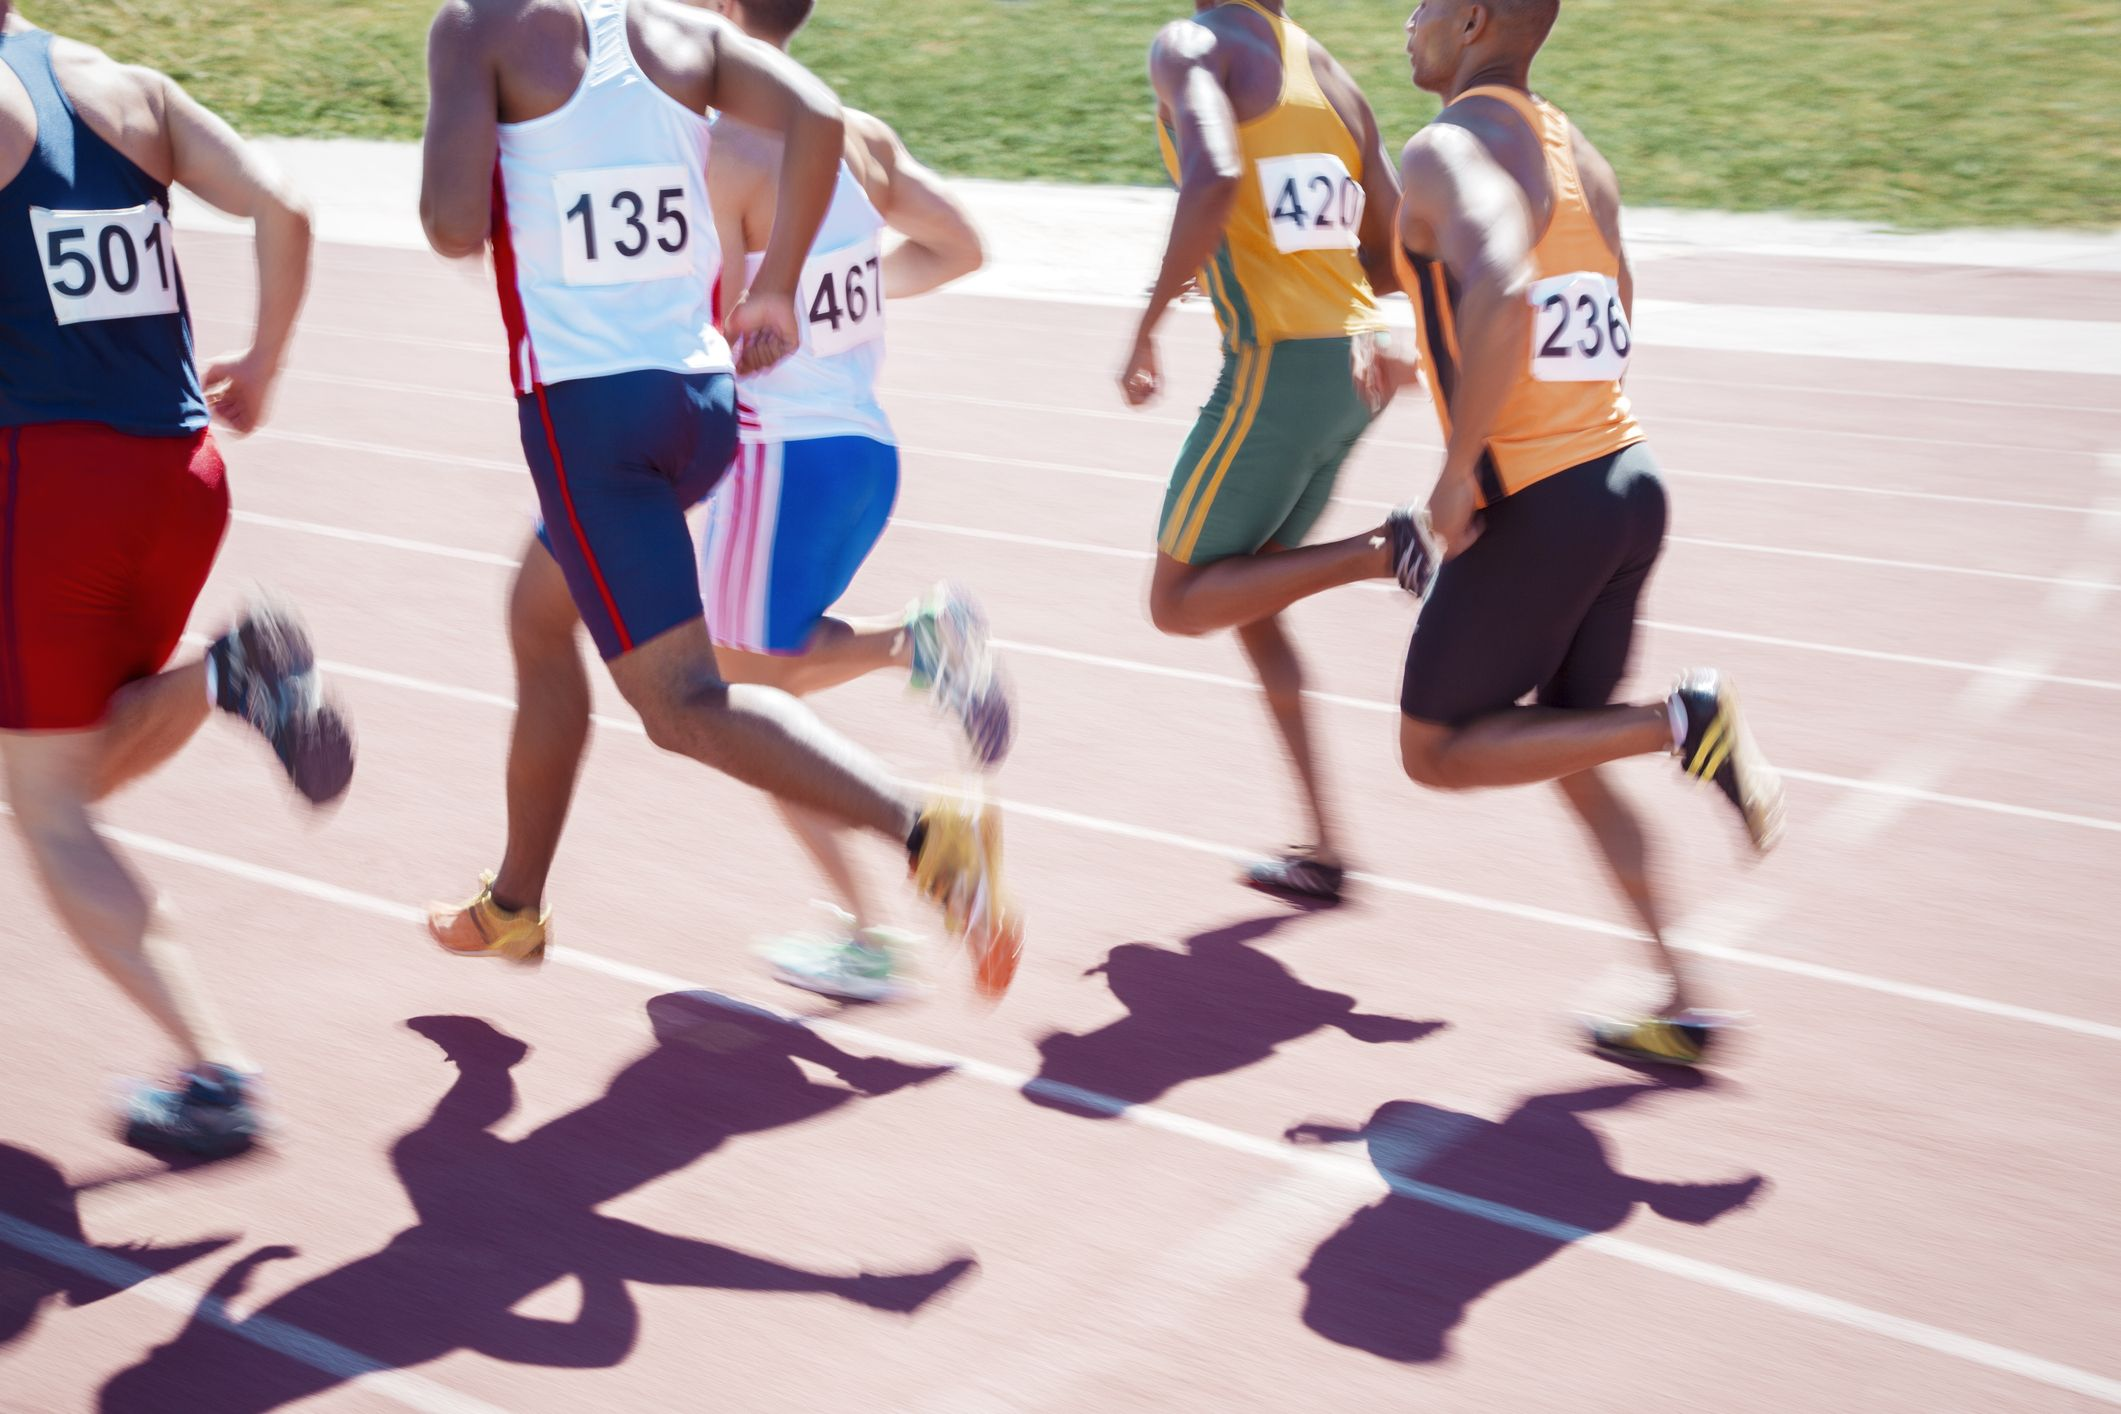 Does drafting behind another runner help you go faster?